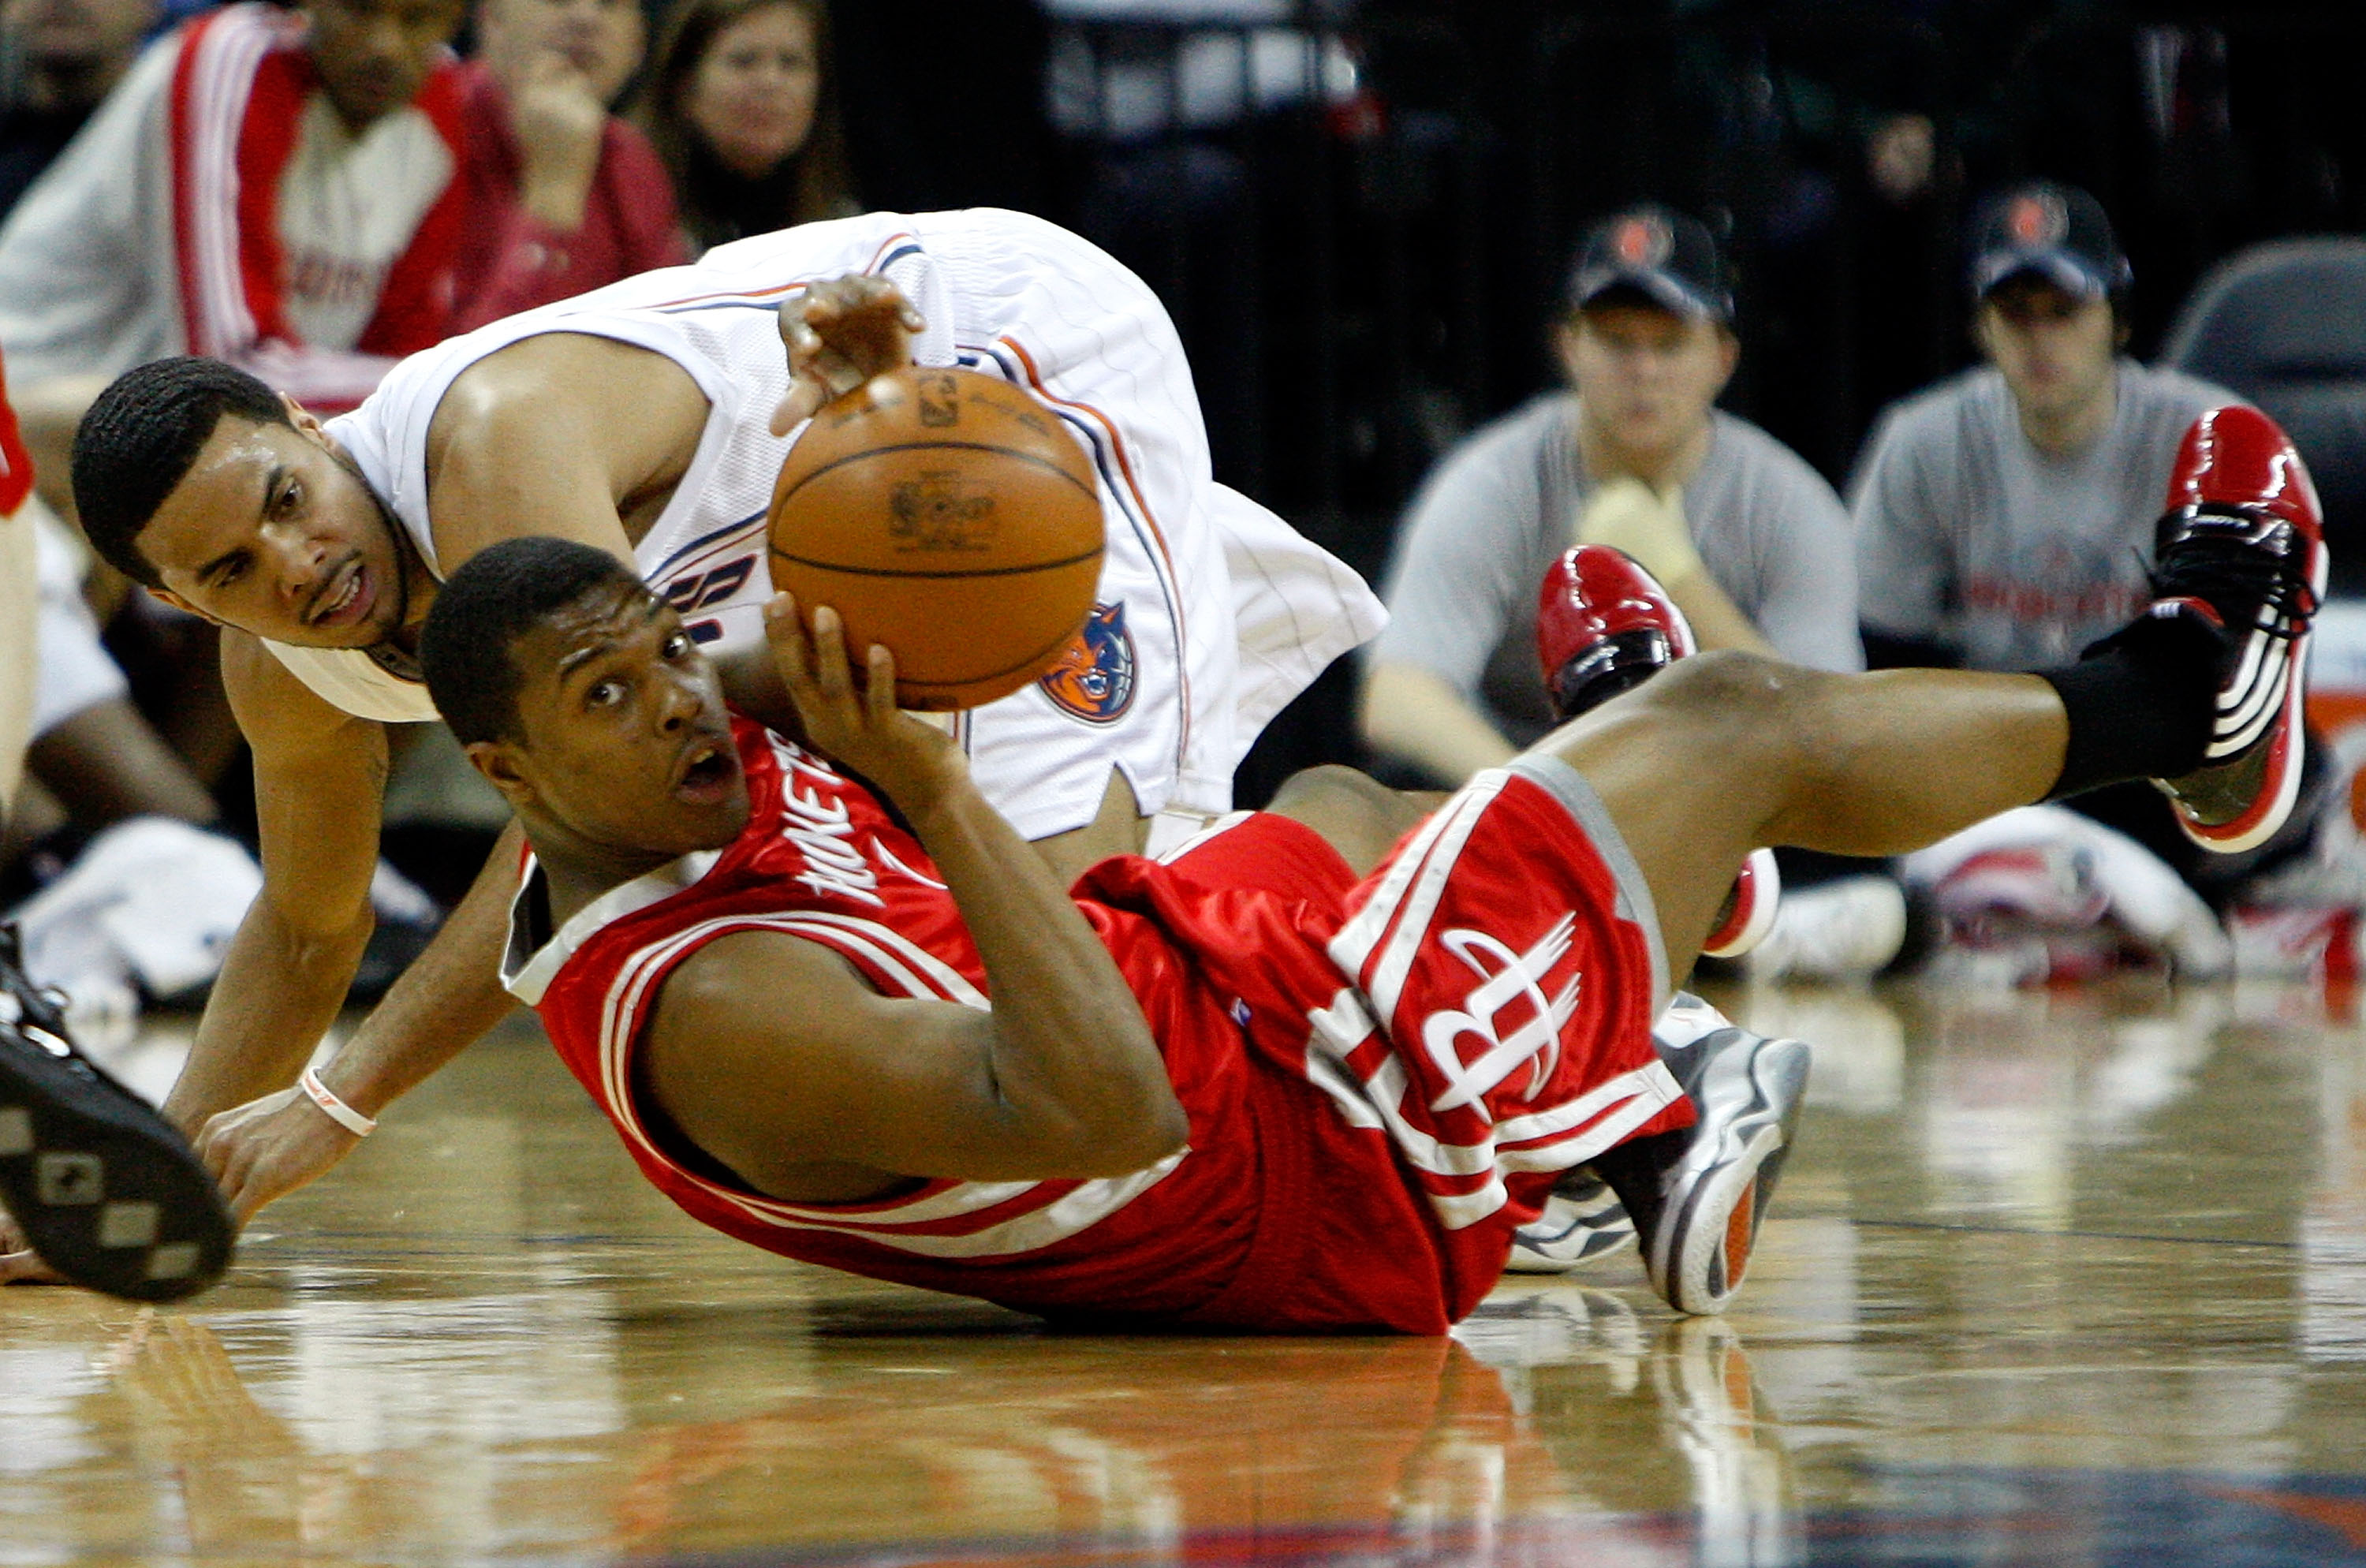 CHARLOTTE, NC - JANUARY 12:  Kyle Lowry #7 of the Houston Rockets scrambles for a loose ball with D.J. Augustin #14 of the Charlotte Bobcats at Time Warner Cable Arena on January 12, 2010 in Charlotte, North Carolina.  NOTE TO USER: User expressly acknowl